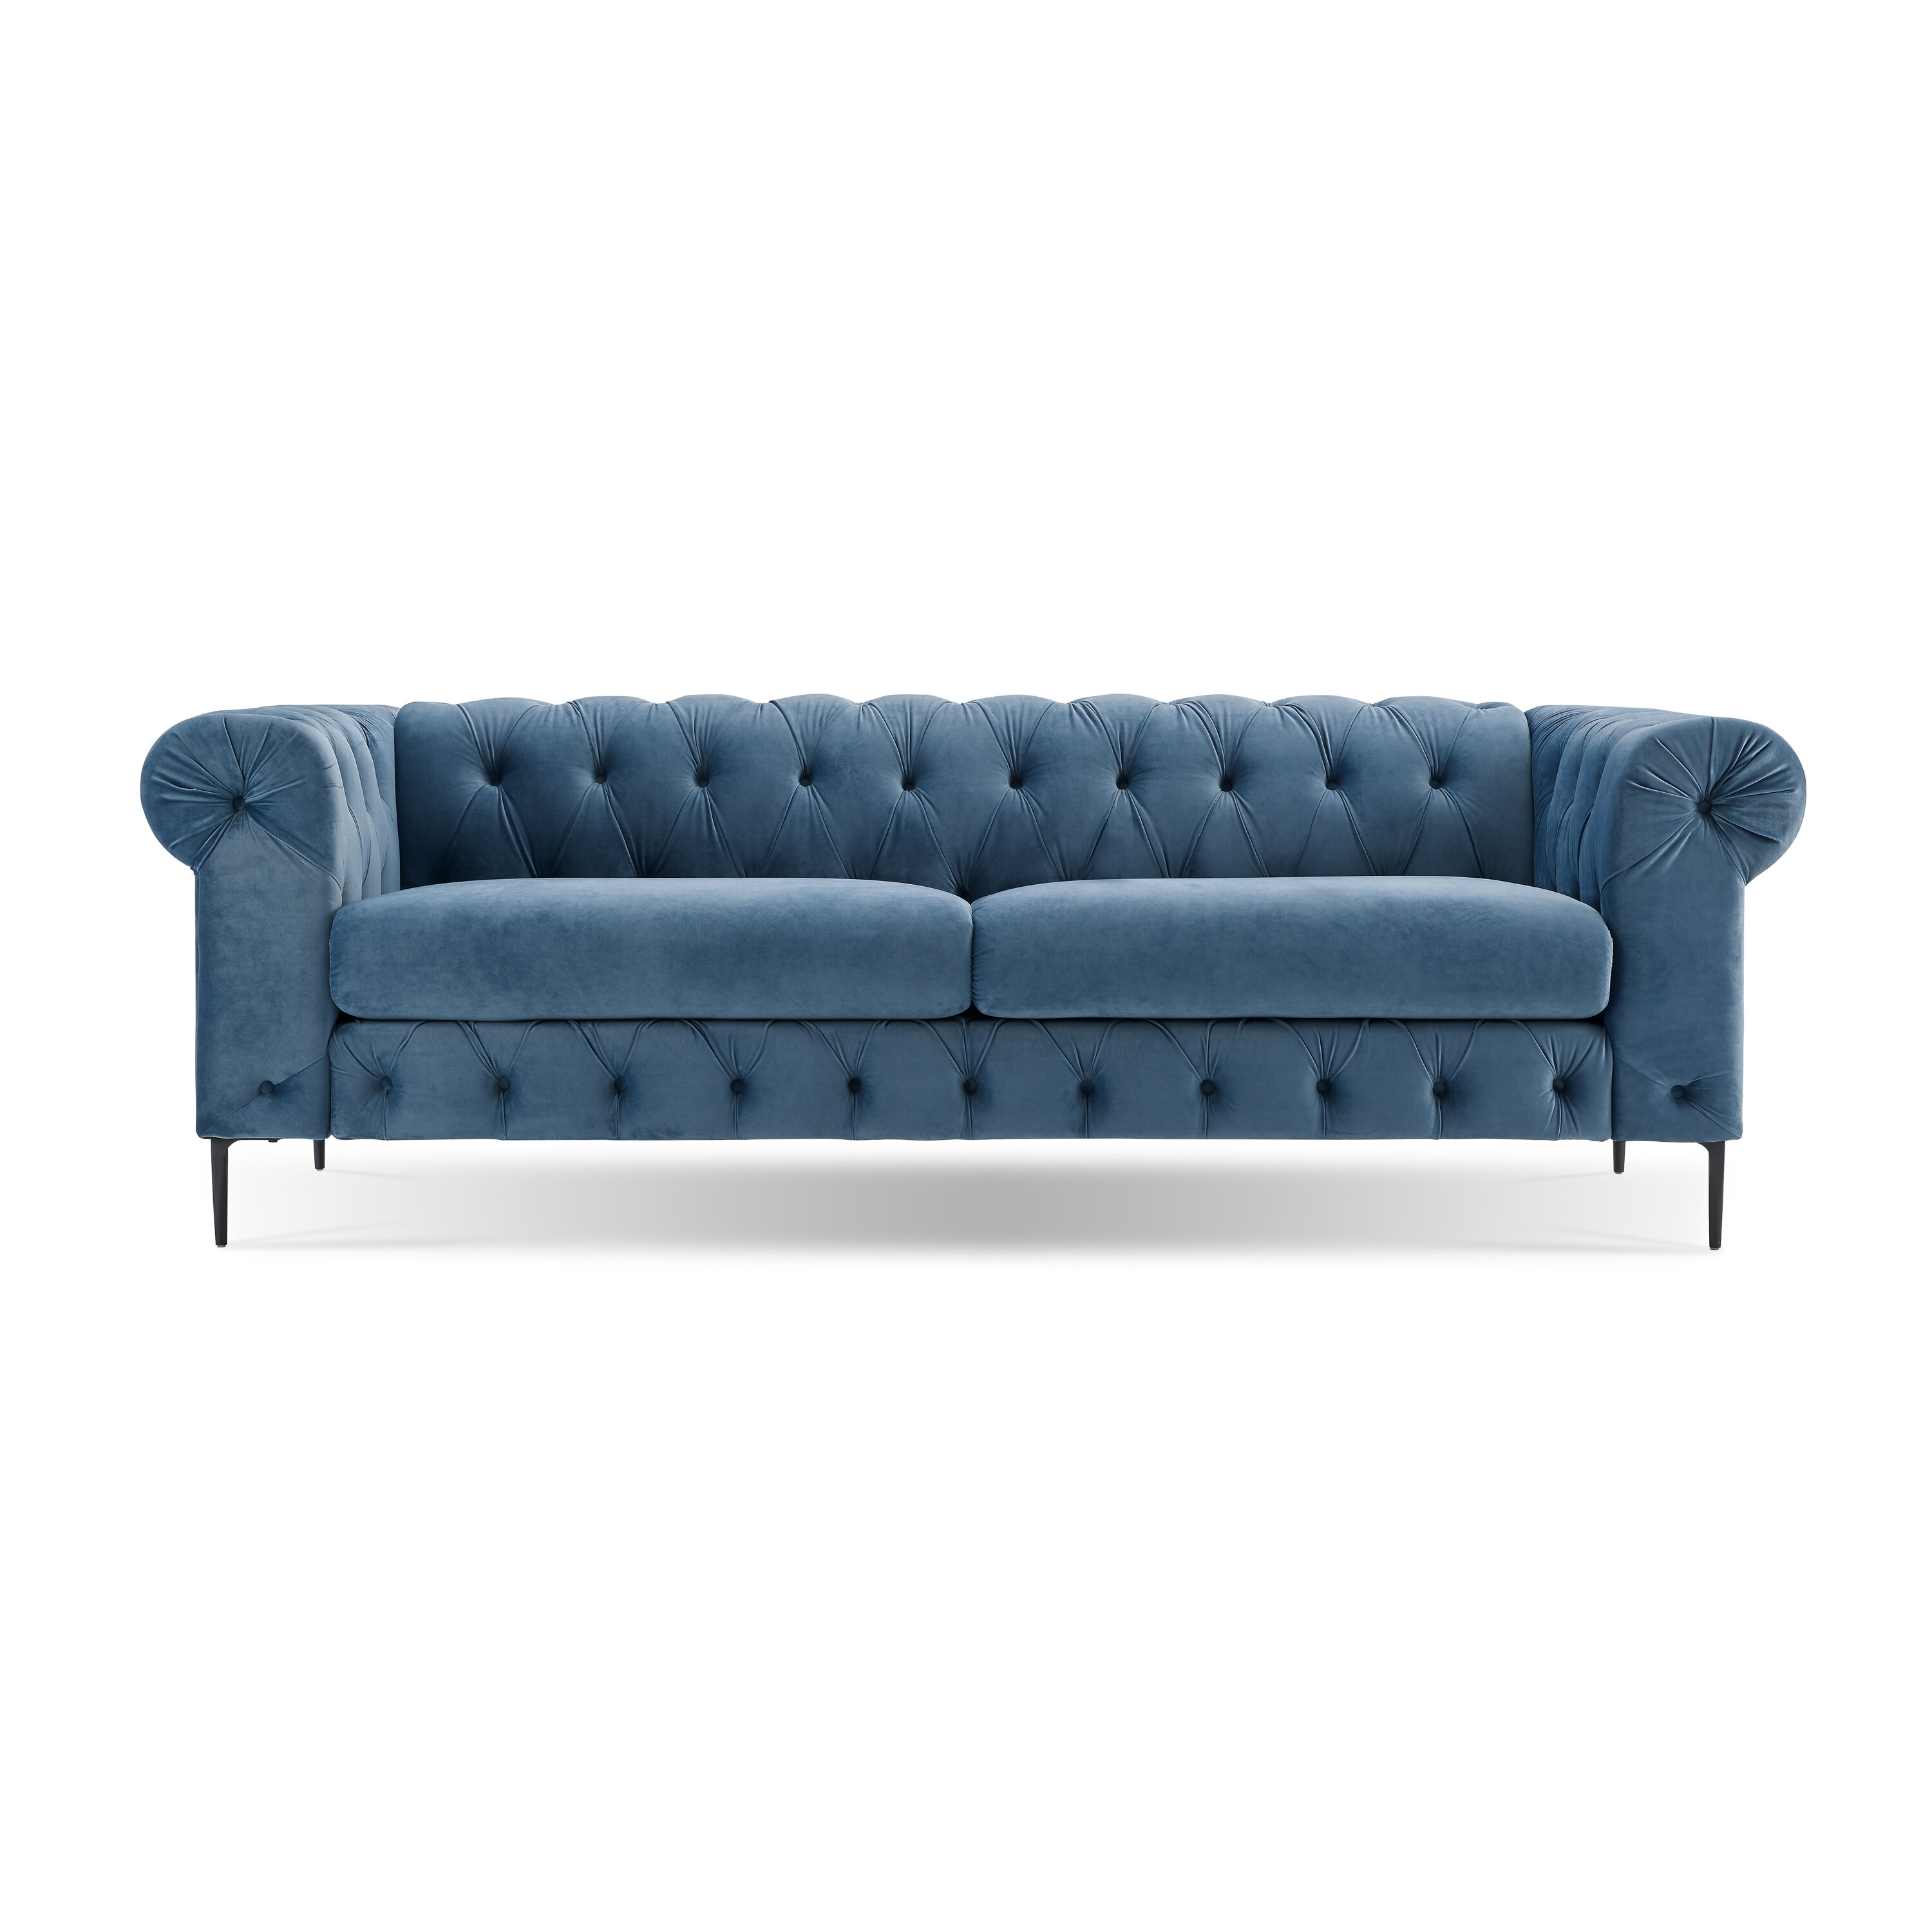 Kohlmeier Chesterfield Sofa